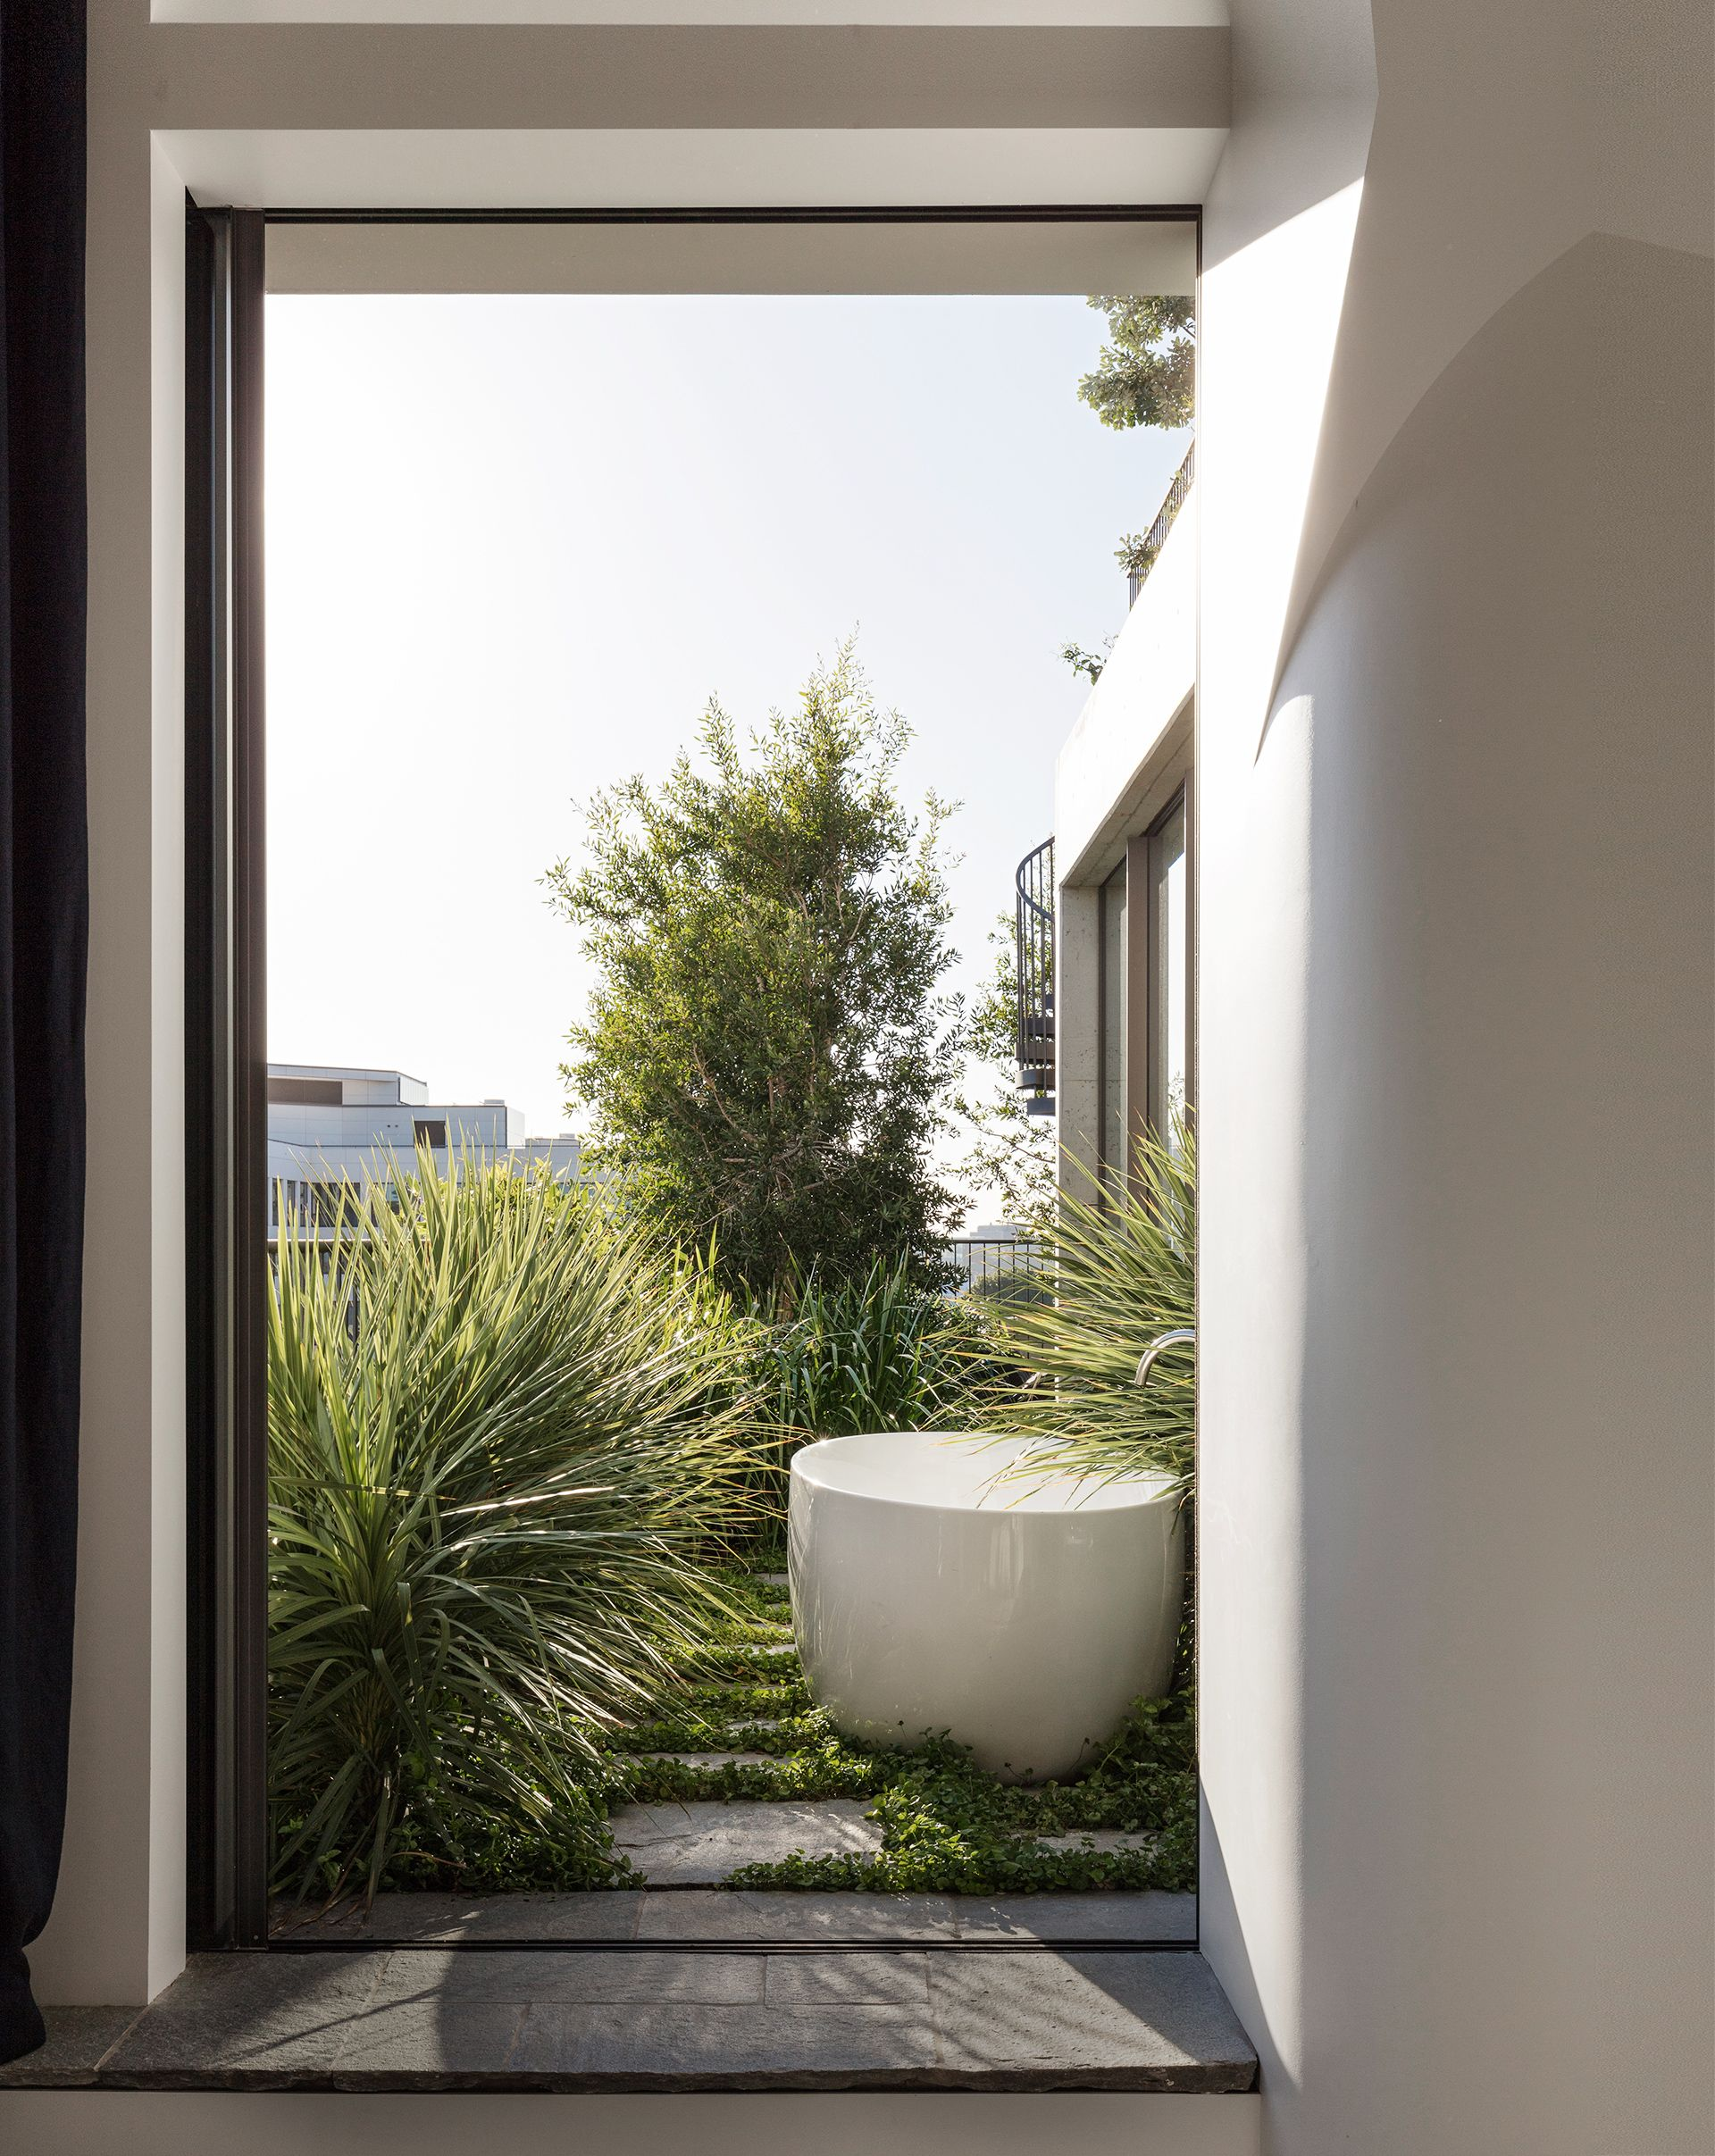 With A Lush Green Rooftop Garden Like This, Who Wouldnu0027t Want An Outdoor